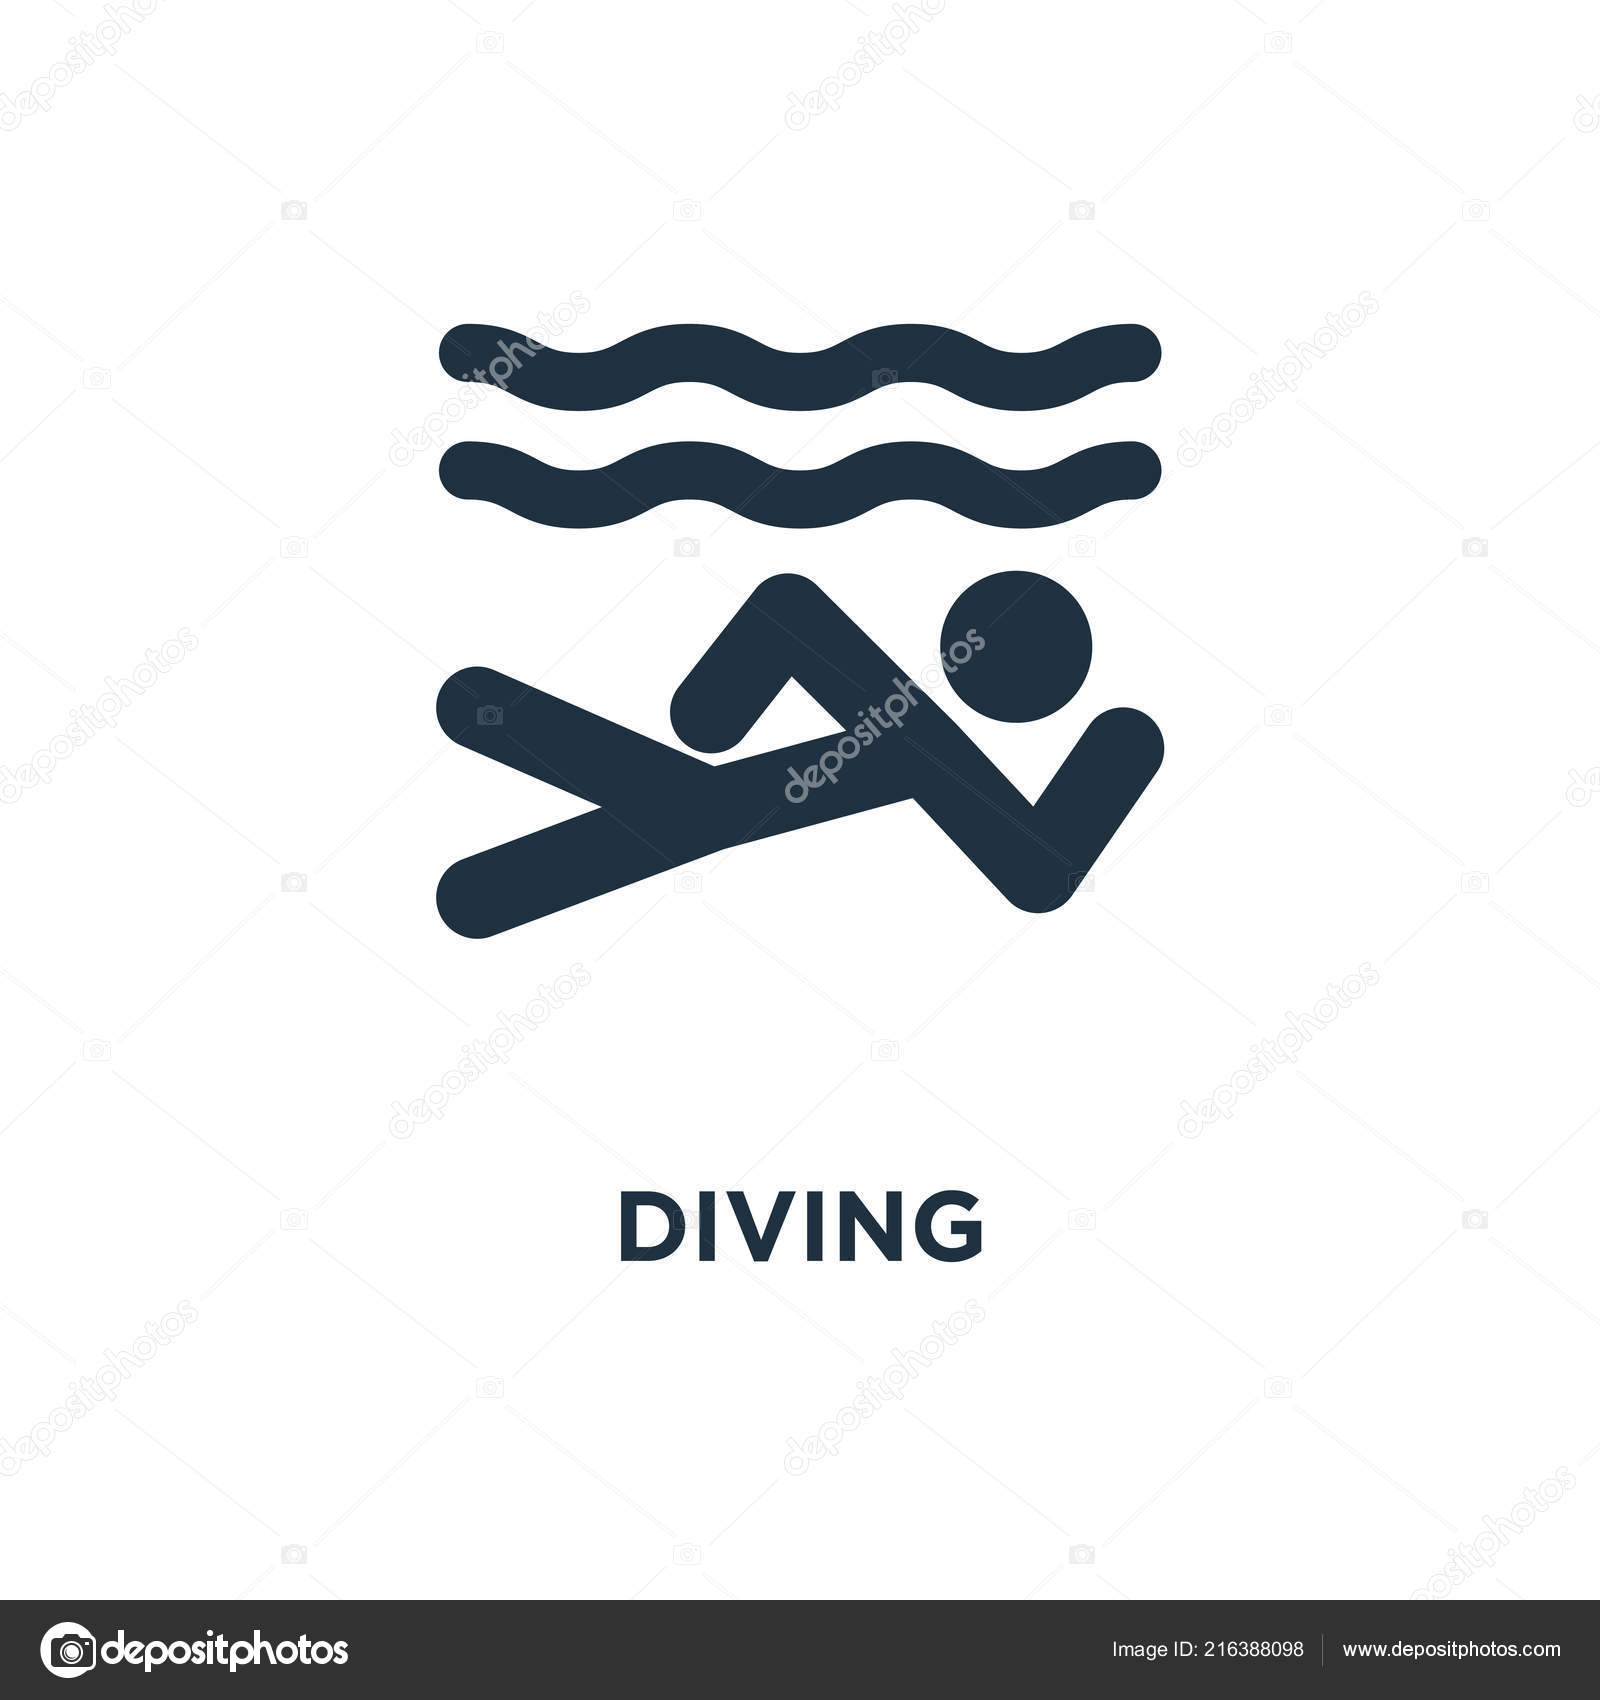 diving icon black filled vector illustration diving symbol white background stock vector c mmvector 216388098 depositphotos